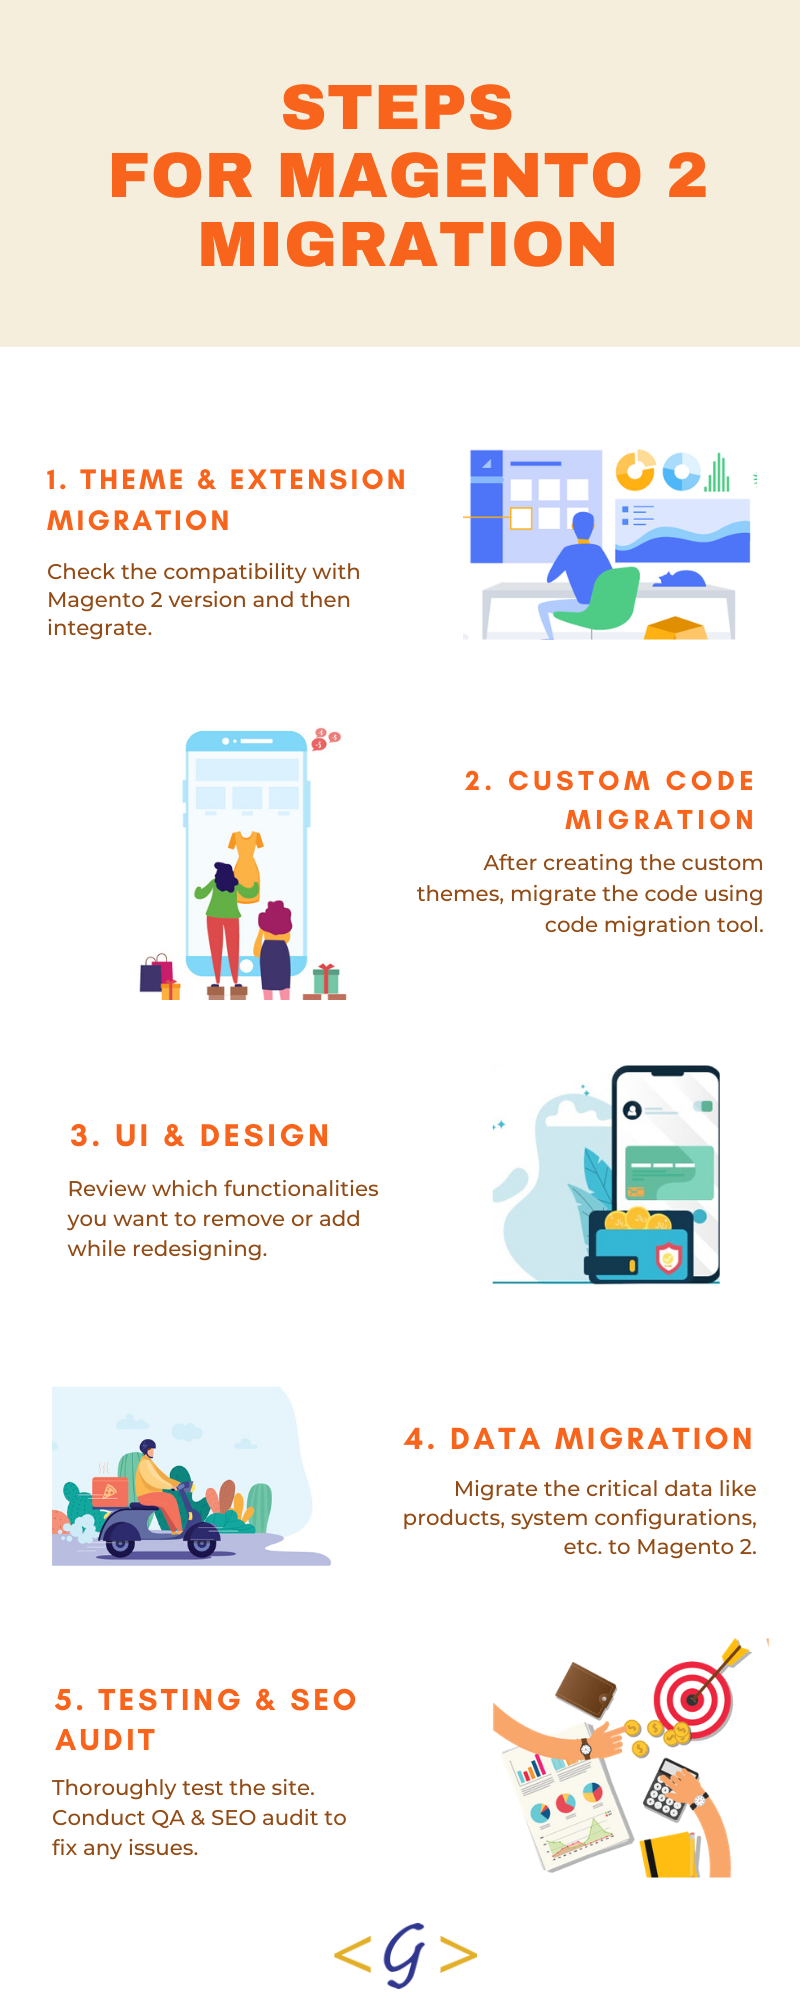 Infographic image showing steps of migration for Magento CMS